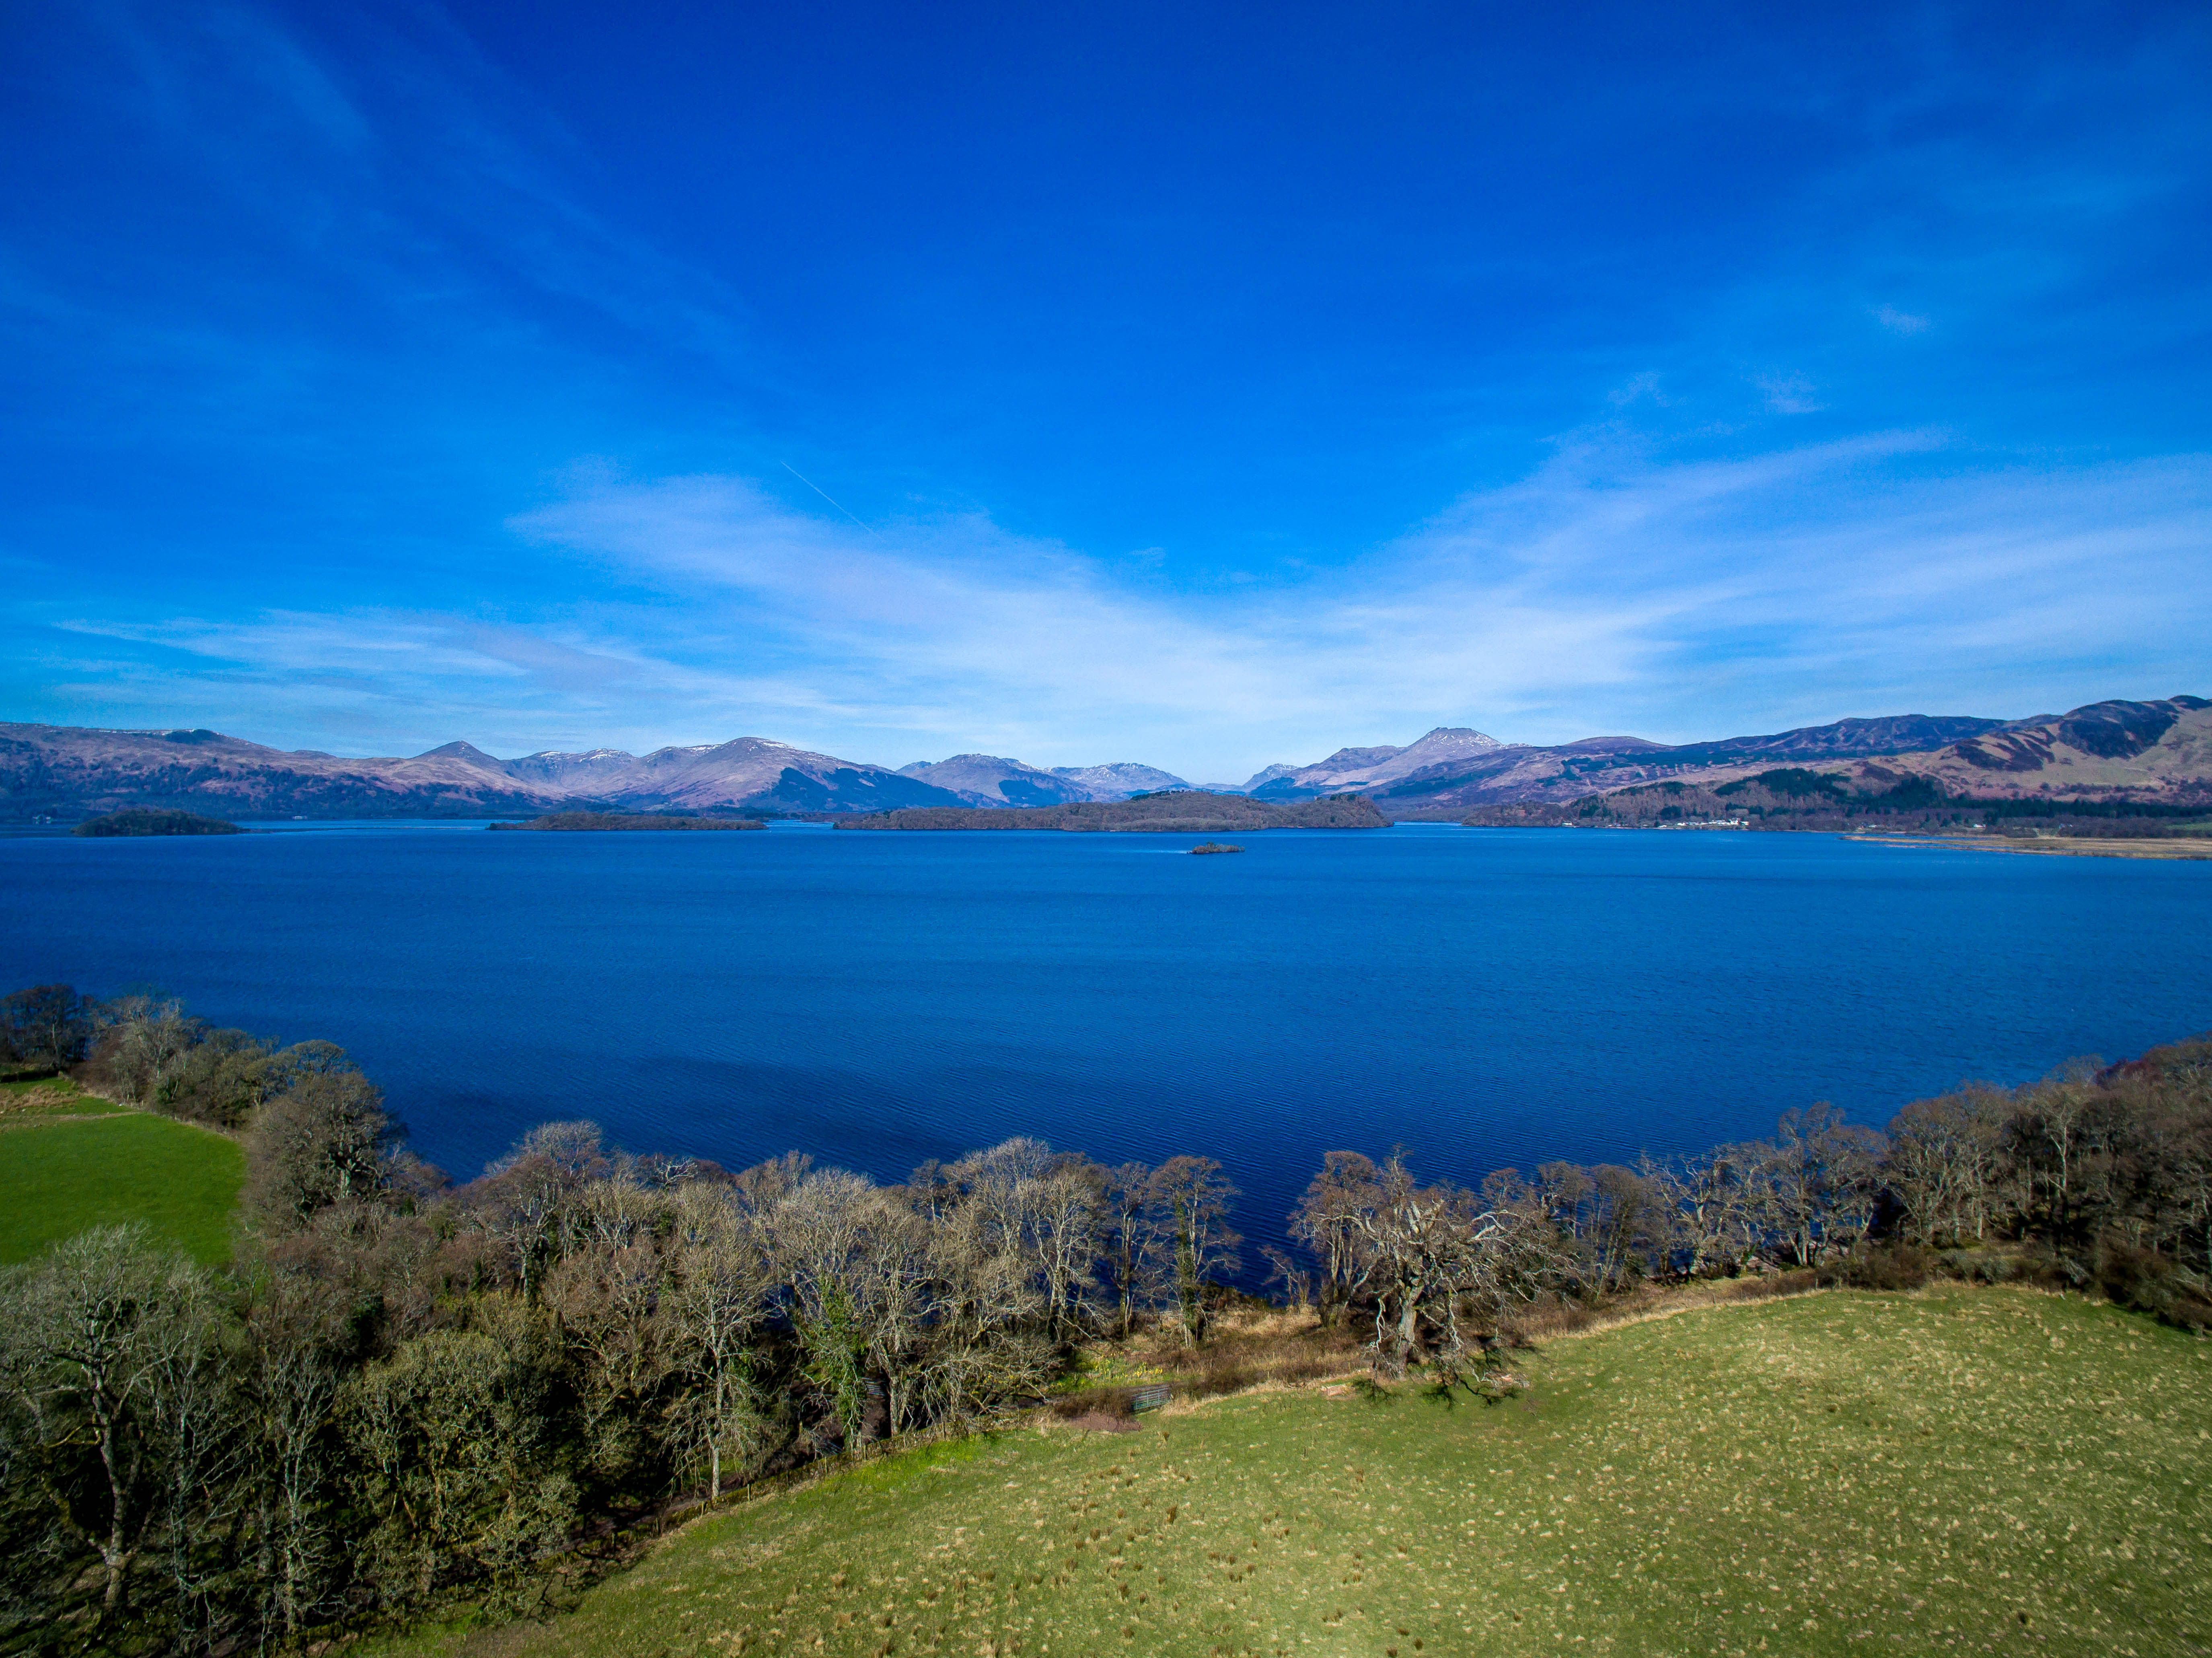 Secluded island for sale in Loch Lomond, Scotland, for under £100,000